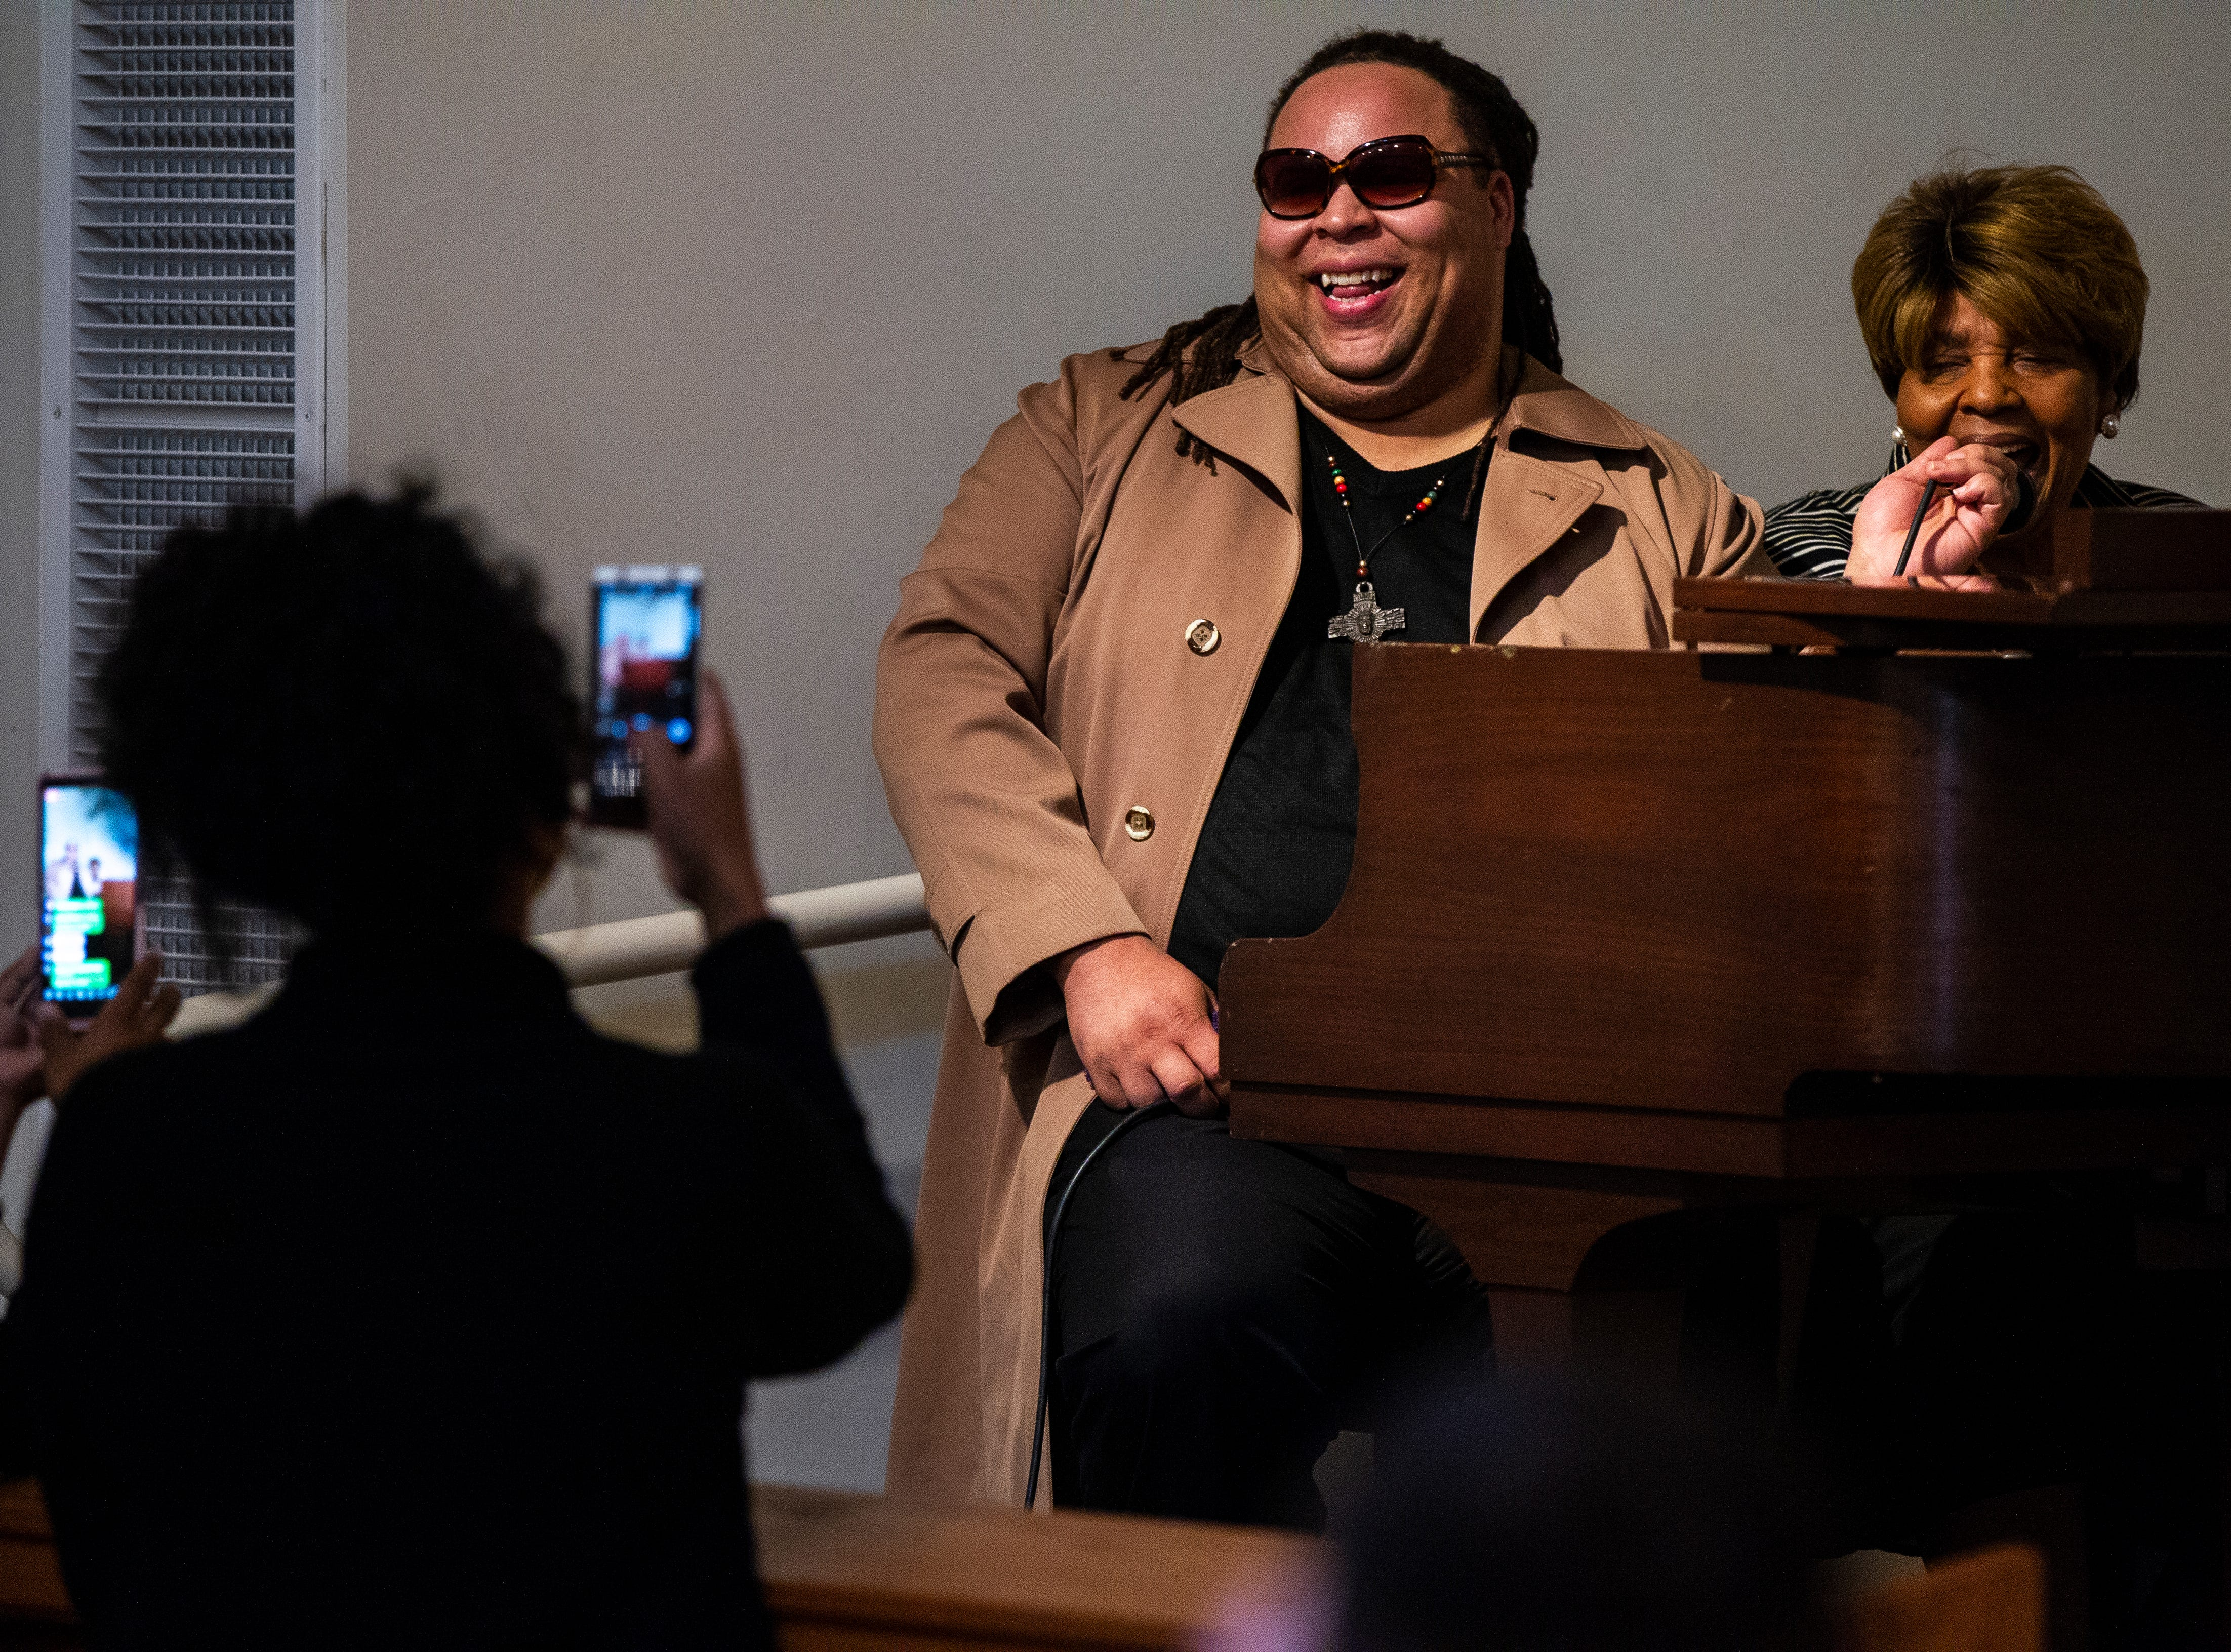 James Teague holds a microphone for his mother Mary Teague as she performs a song during a swearing in ceremony for Iowa City councilor Bruce Teague on Saturday, Oct. 13, 2018, at the Church of Nazarene on Wade Street in Iowa City.